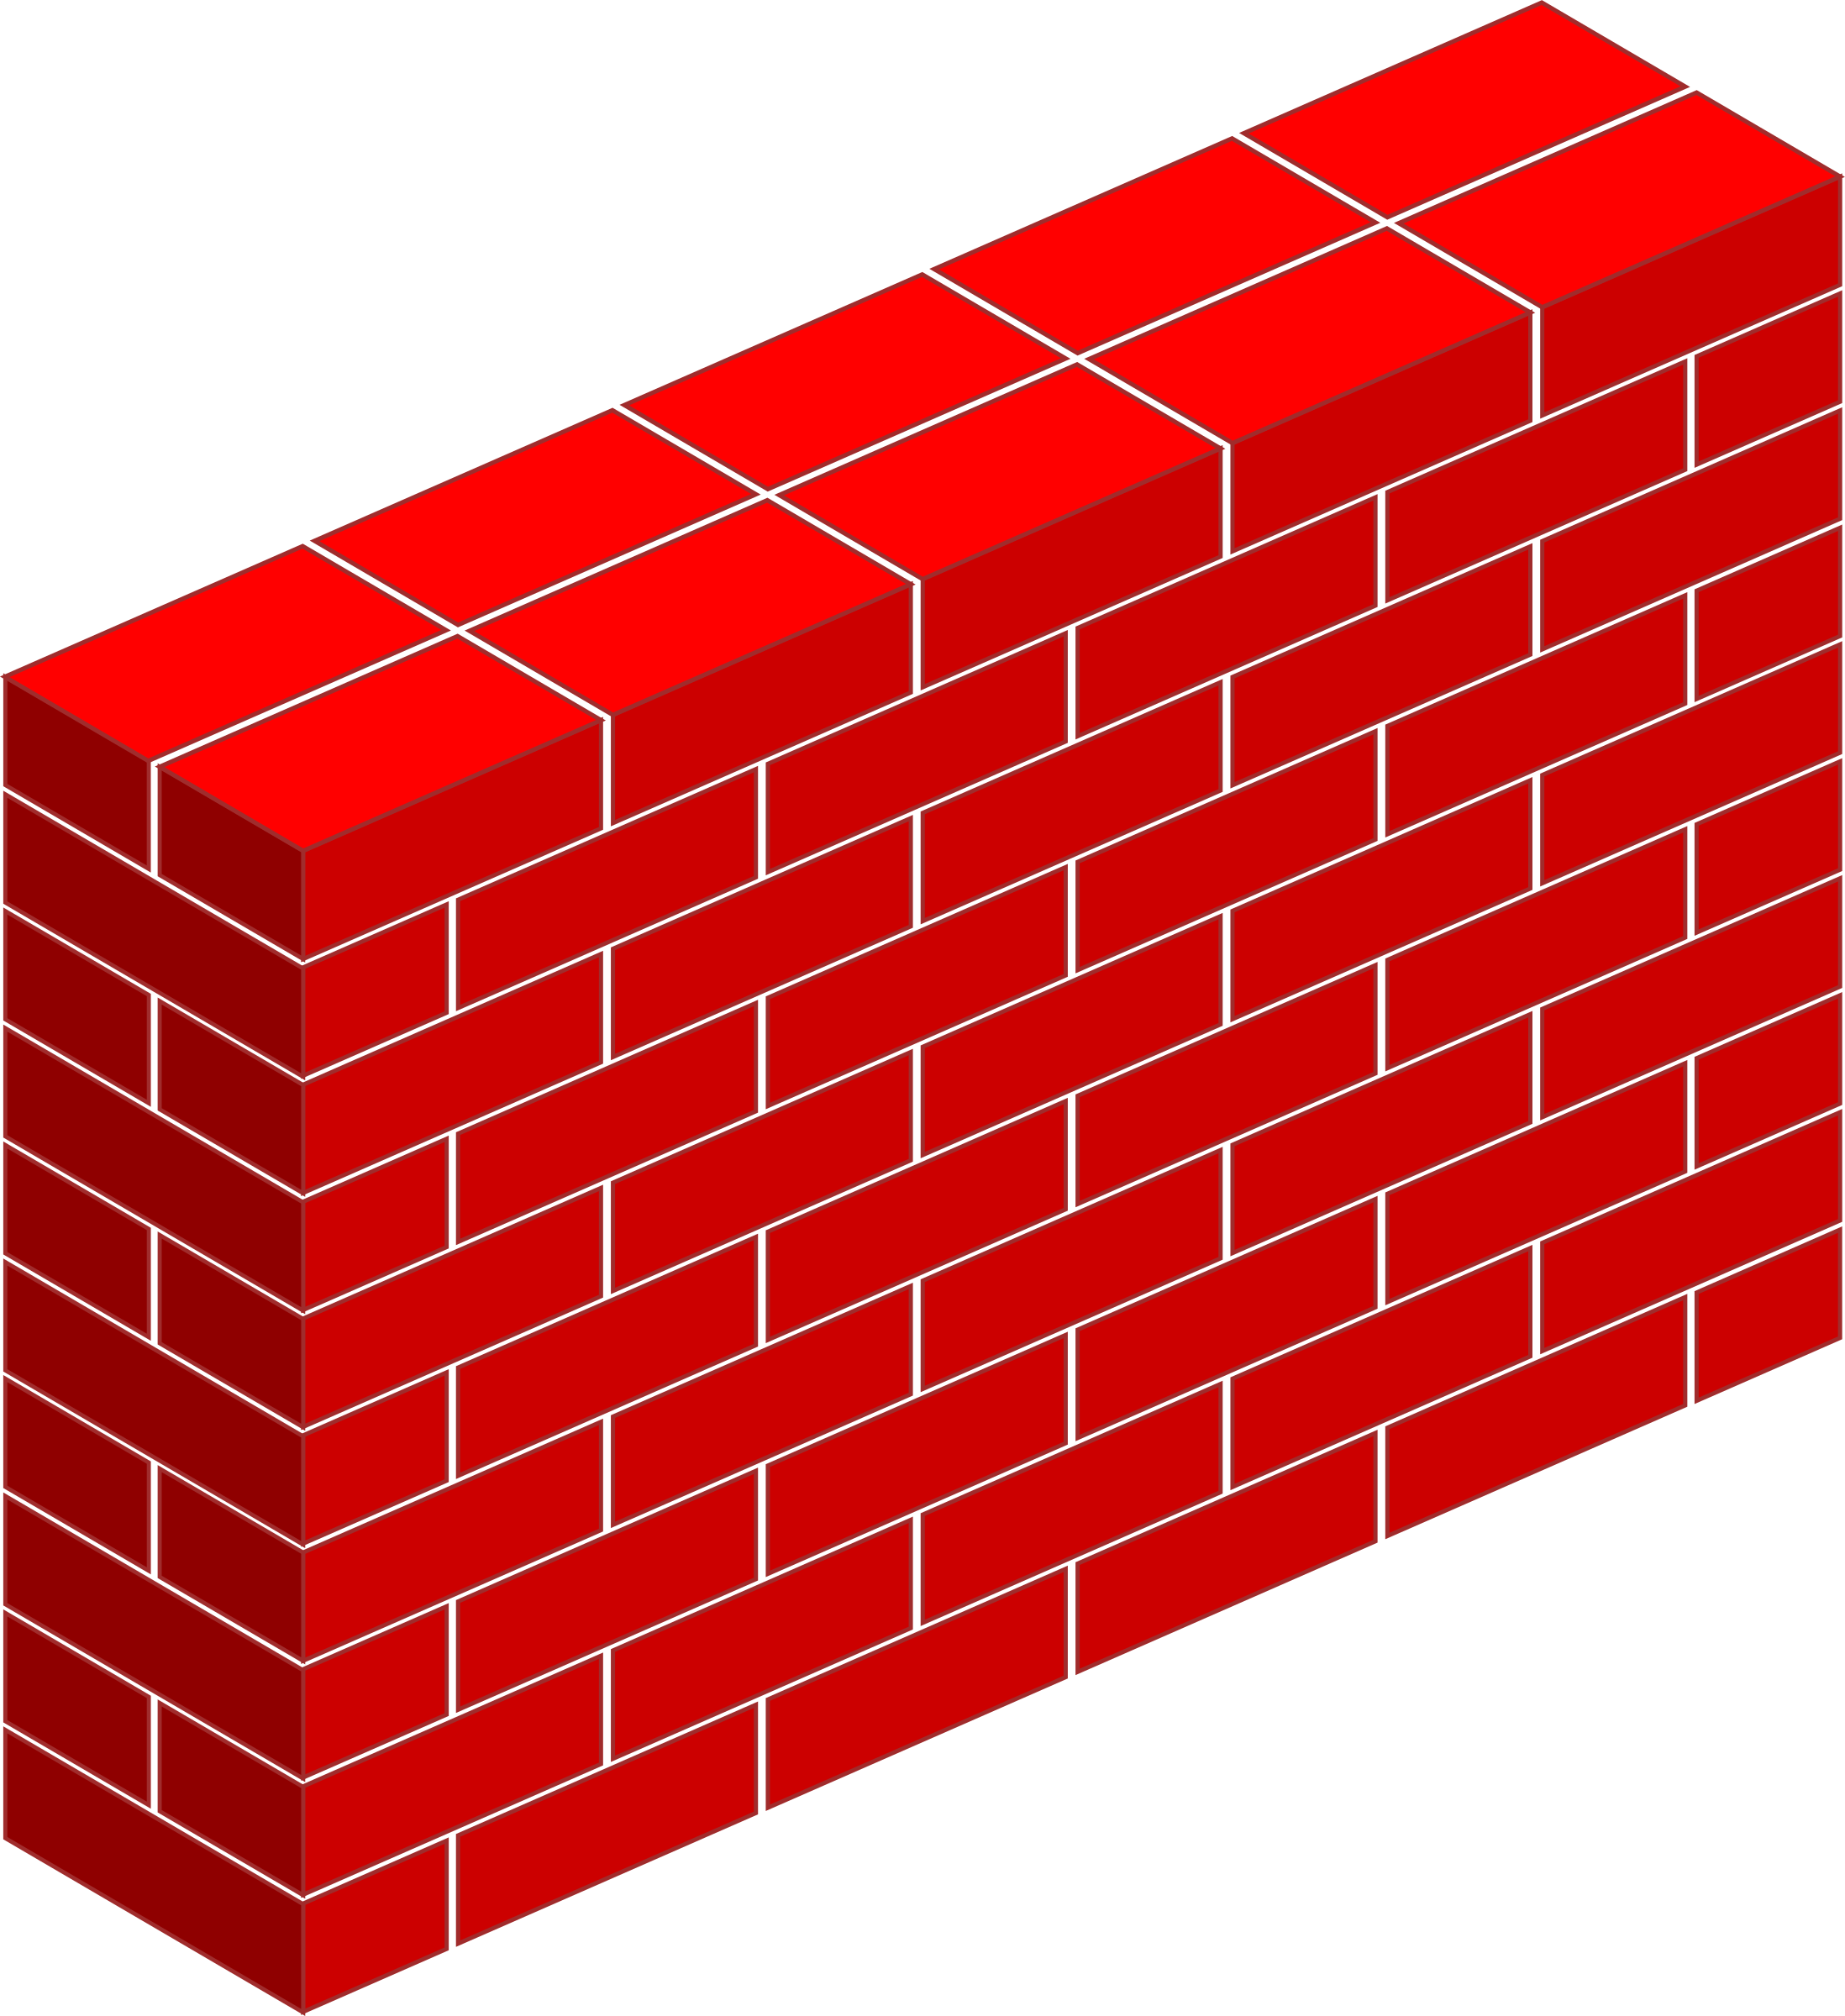 House wall clipart clipart free stock 28+ Collection of Brick Wall Clipart Png | High quality, free ... clipart free stock